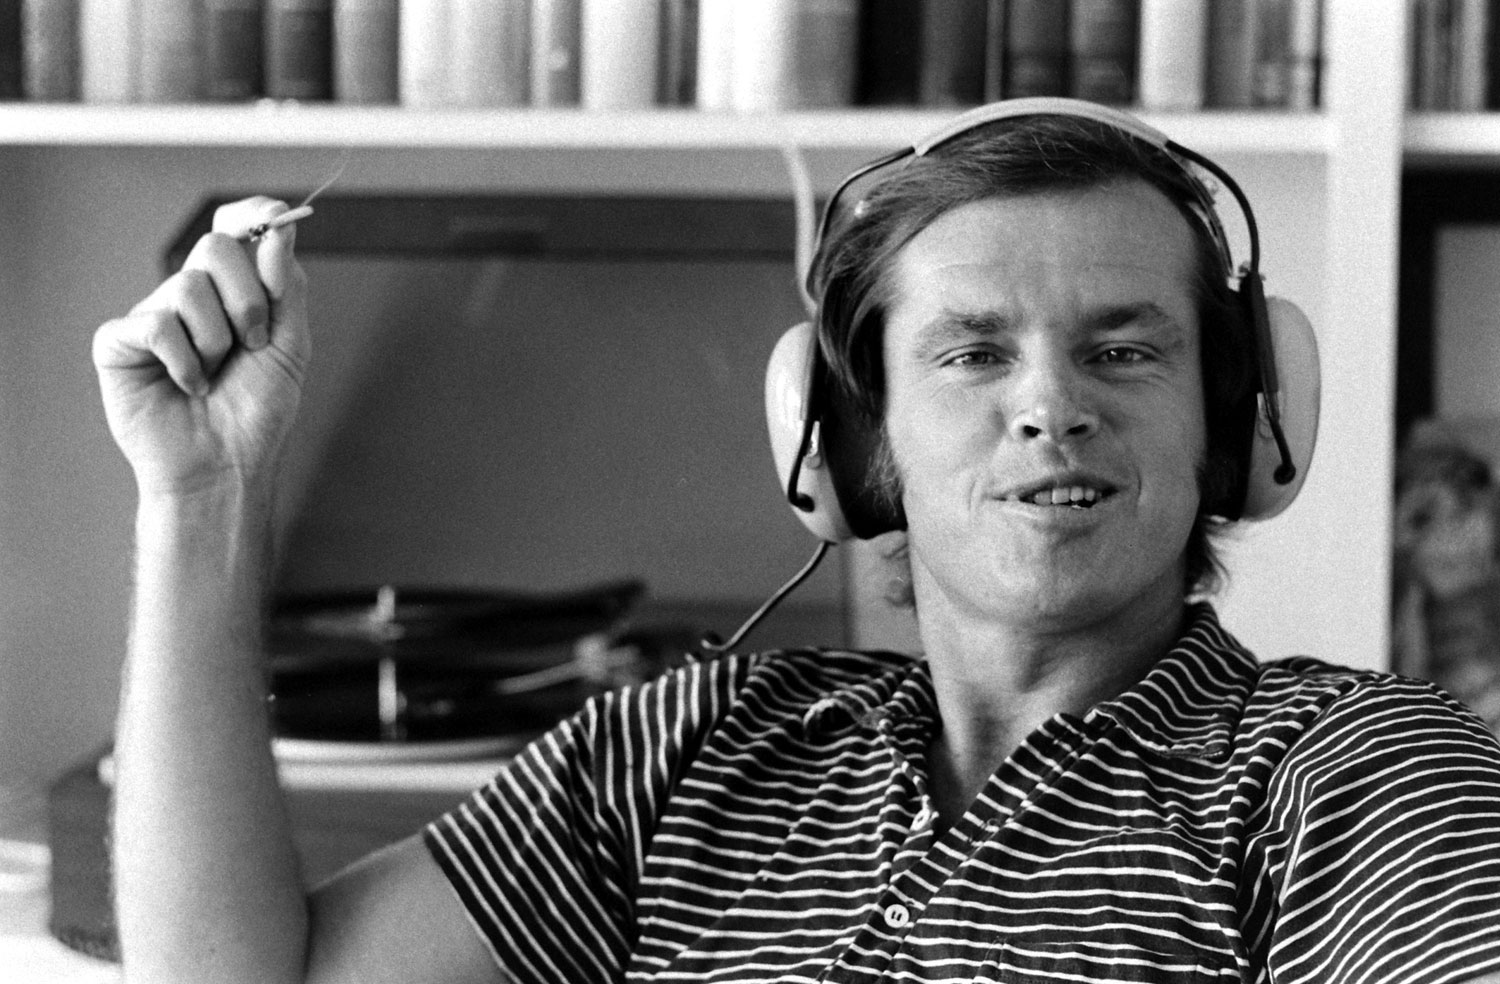 Jack Nicholson at home in Los Angeles, 1969.